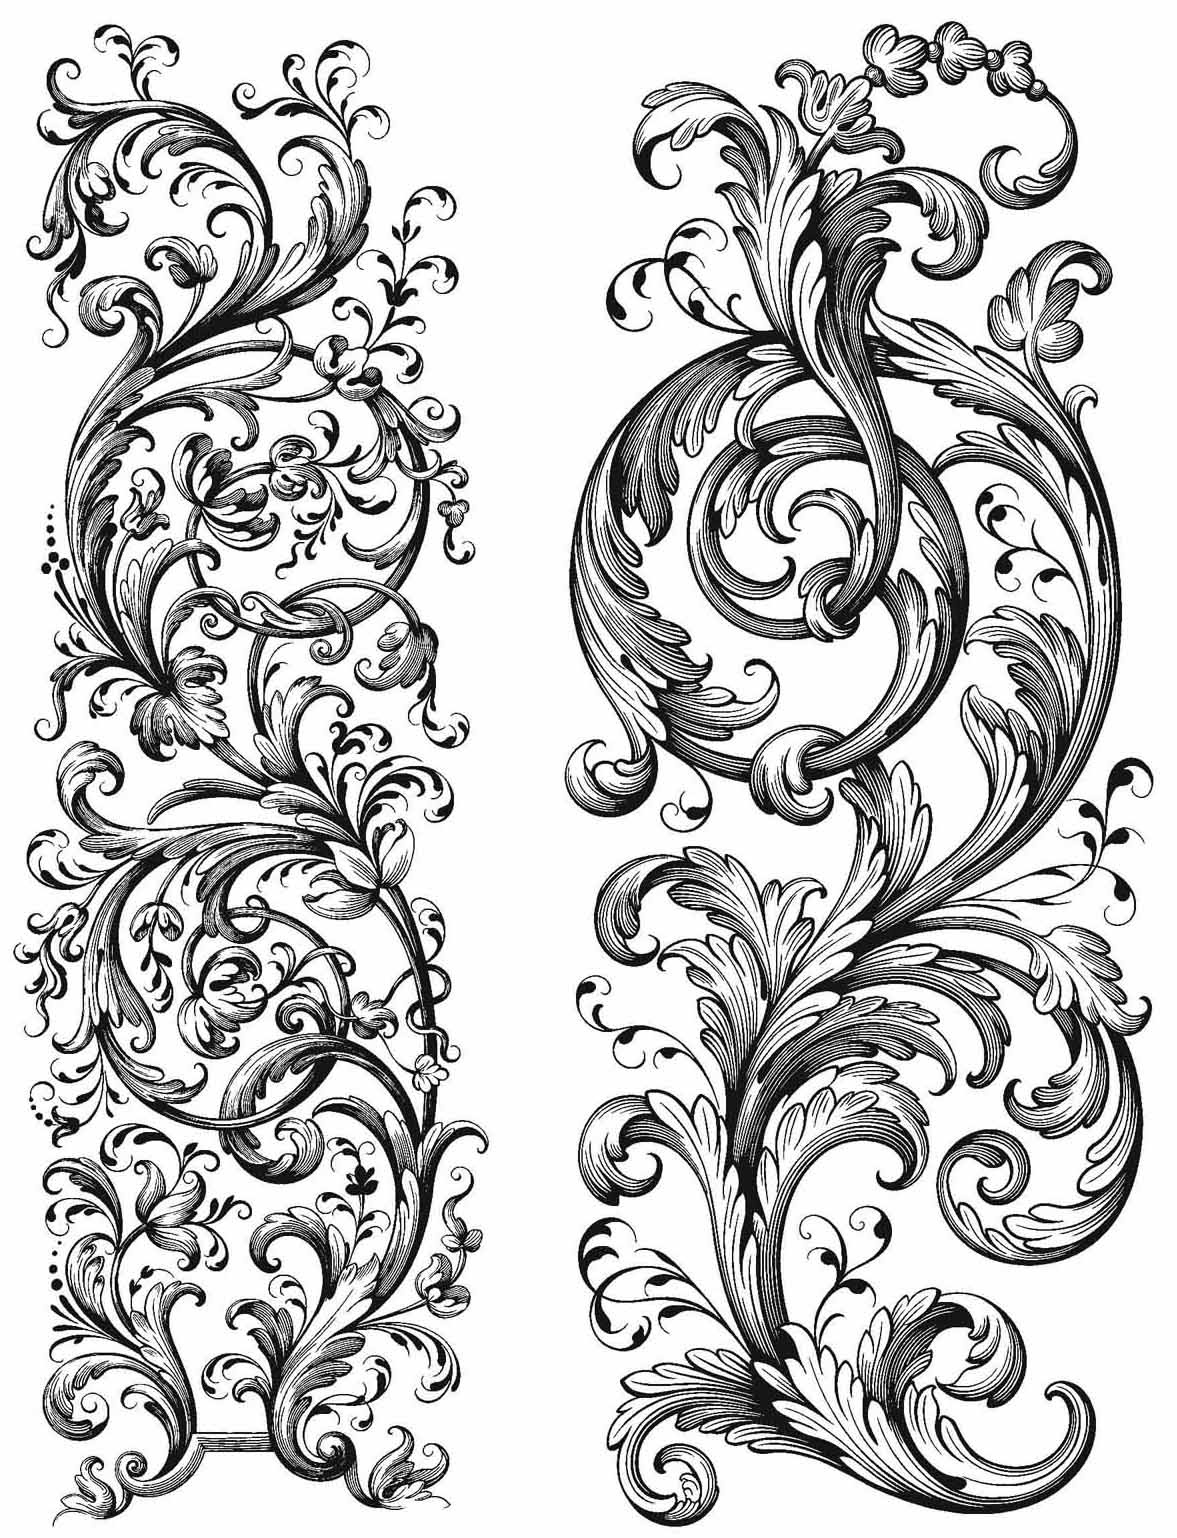 Tim Holtz Cling Stamps 7X8.5-Baroque